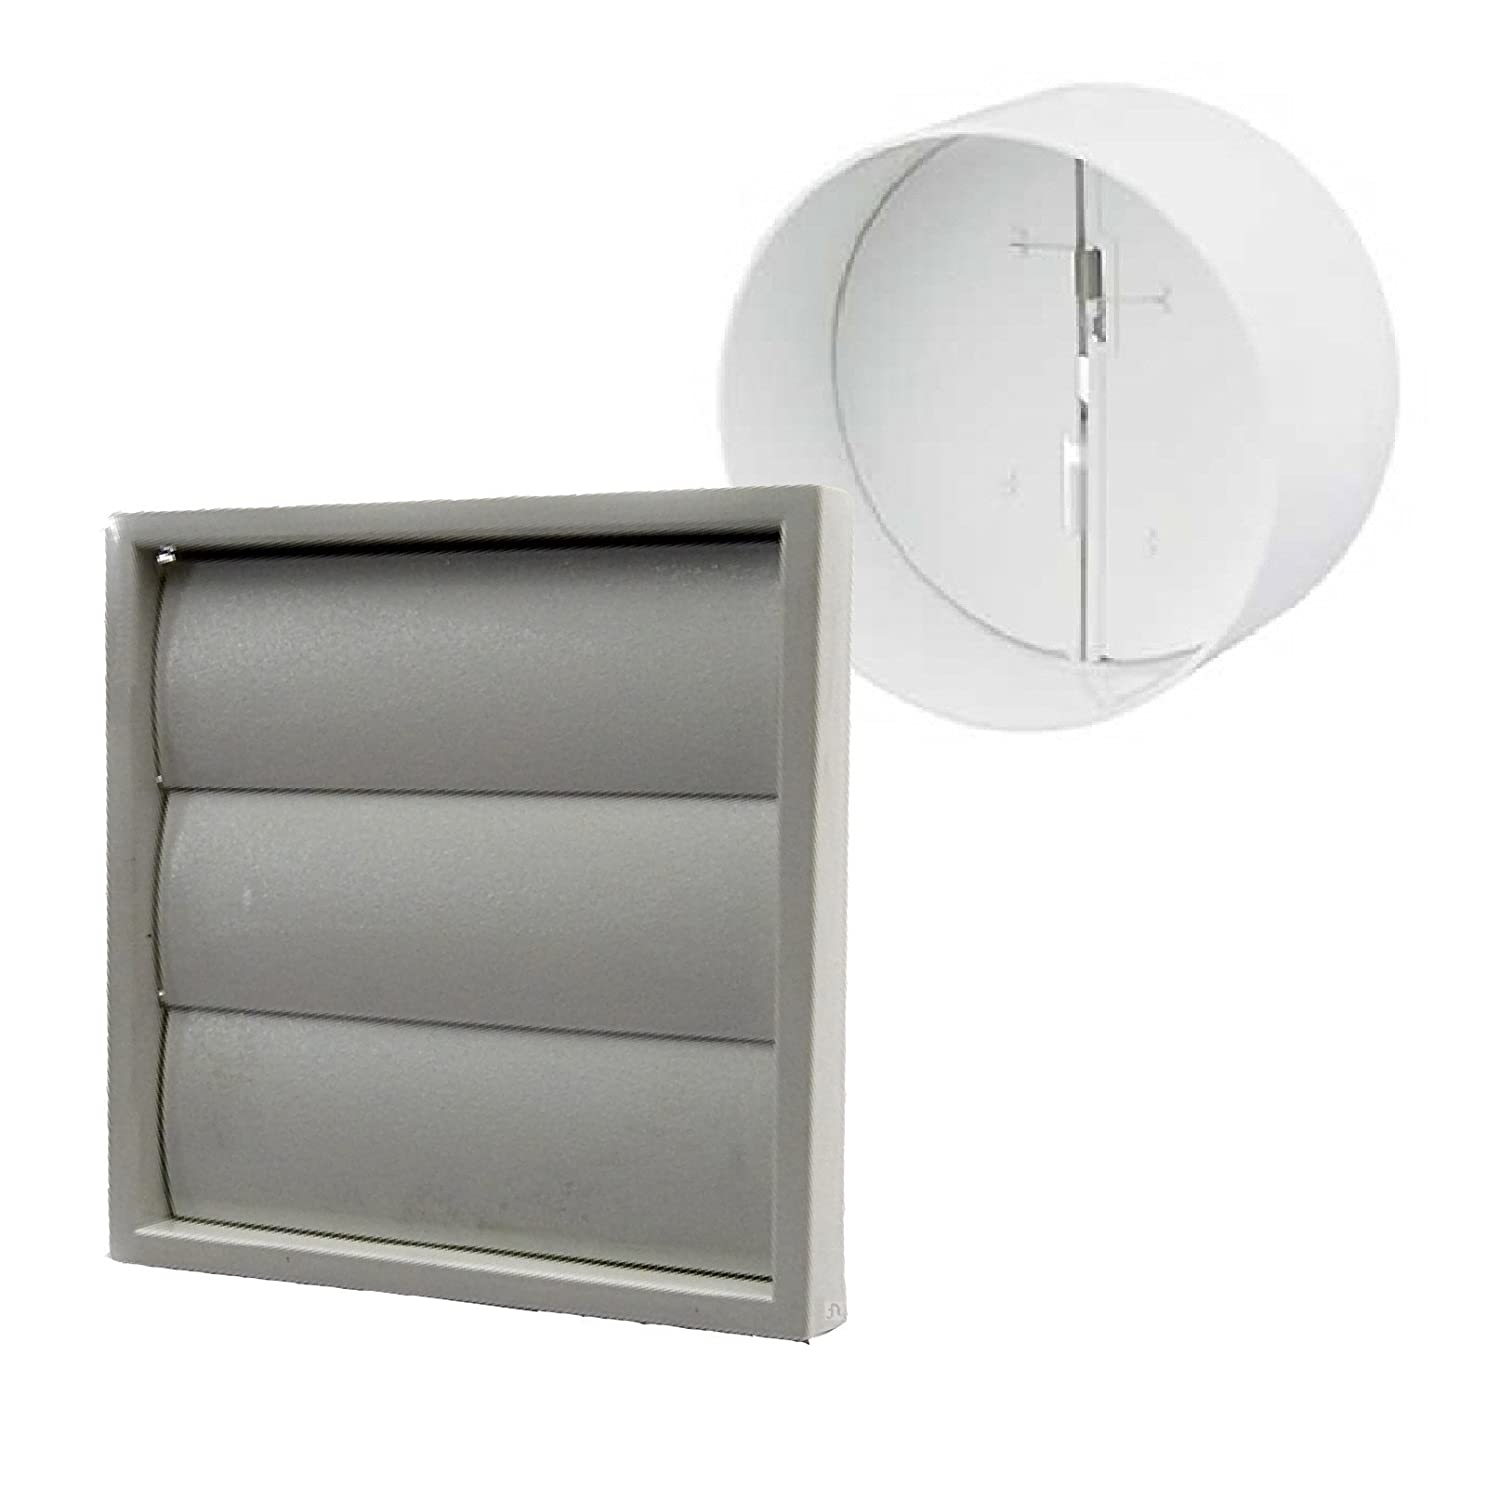 Grey Gravity Square Extractor Air Vent & Back Draught Shutter 4 Inch Ducting Manrose DS-K2BJ-R0L6